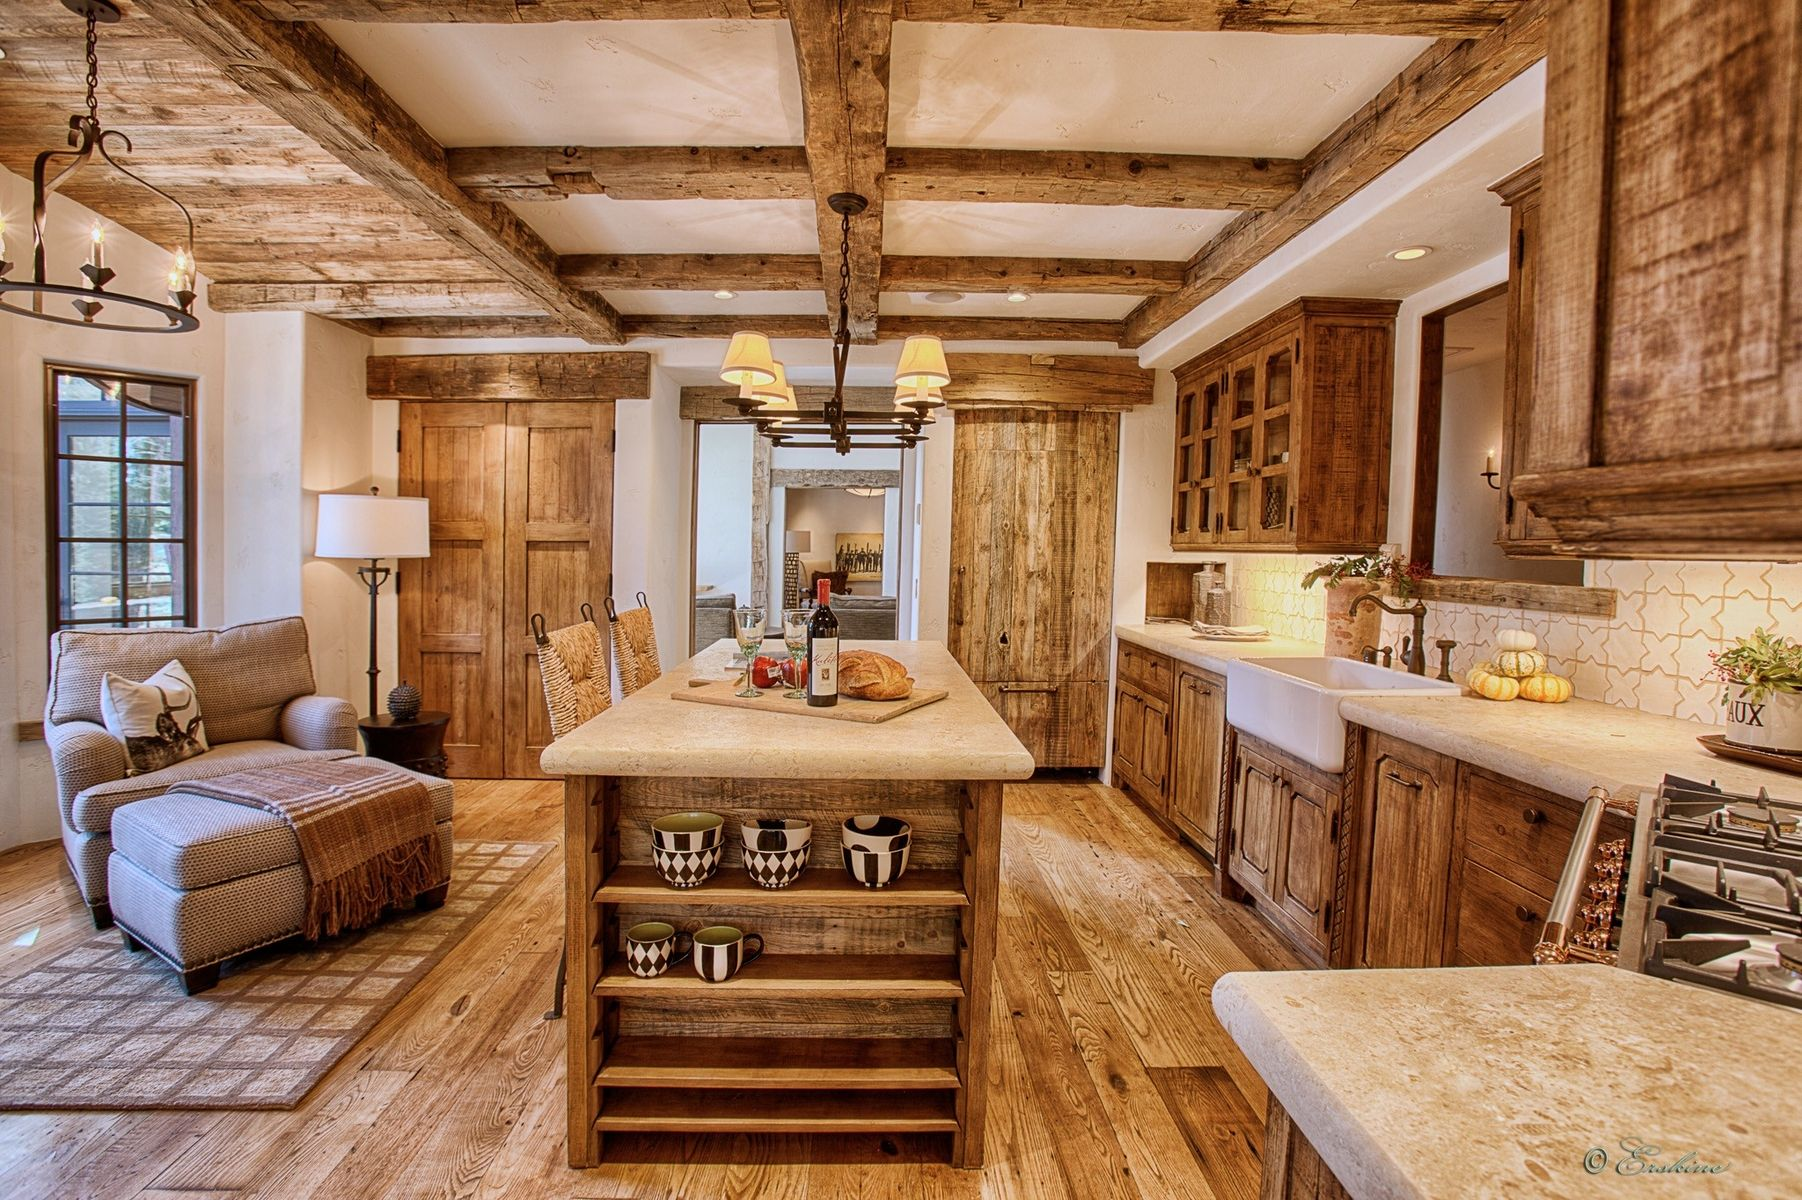 wooden kitchen furniture wood kitchens uamp units naturally design o wooden kitchen chairs Wood Kitchen Furniture Images About Kitchens On Pinterest Countertops Cherry Kitchen Cabinets And Wood